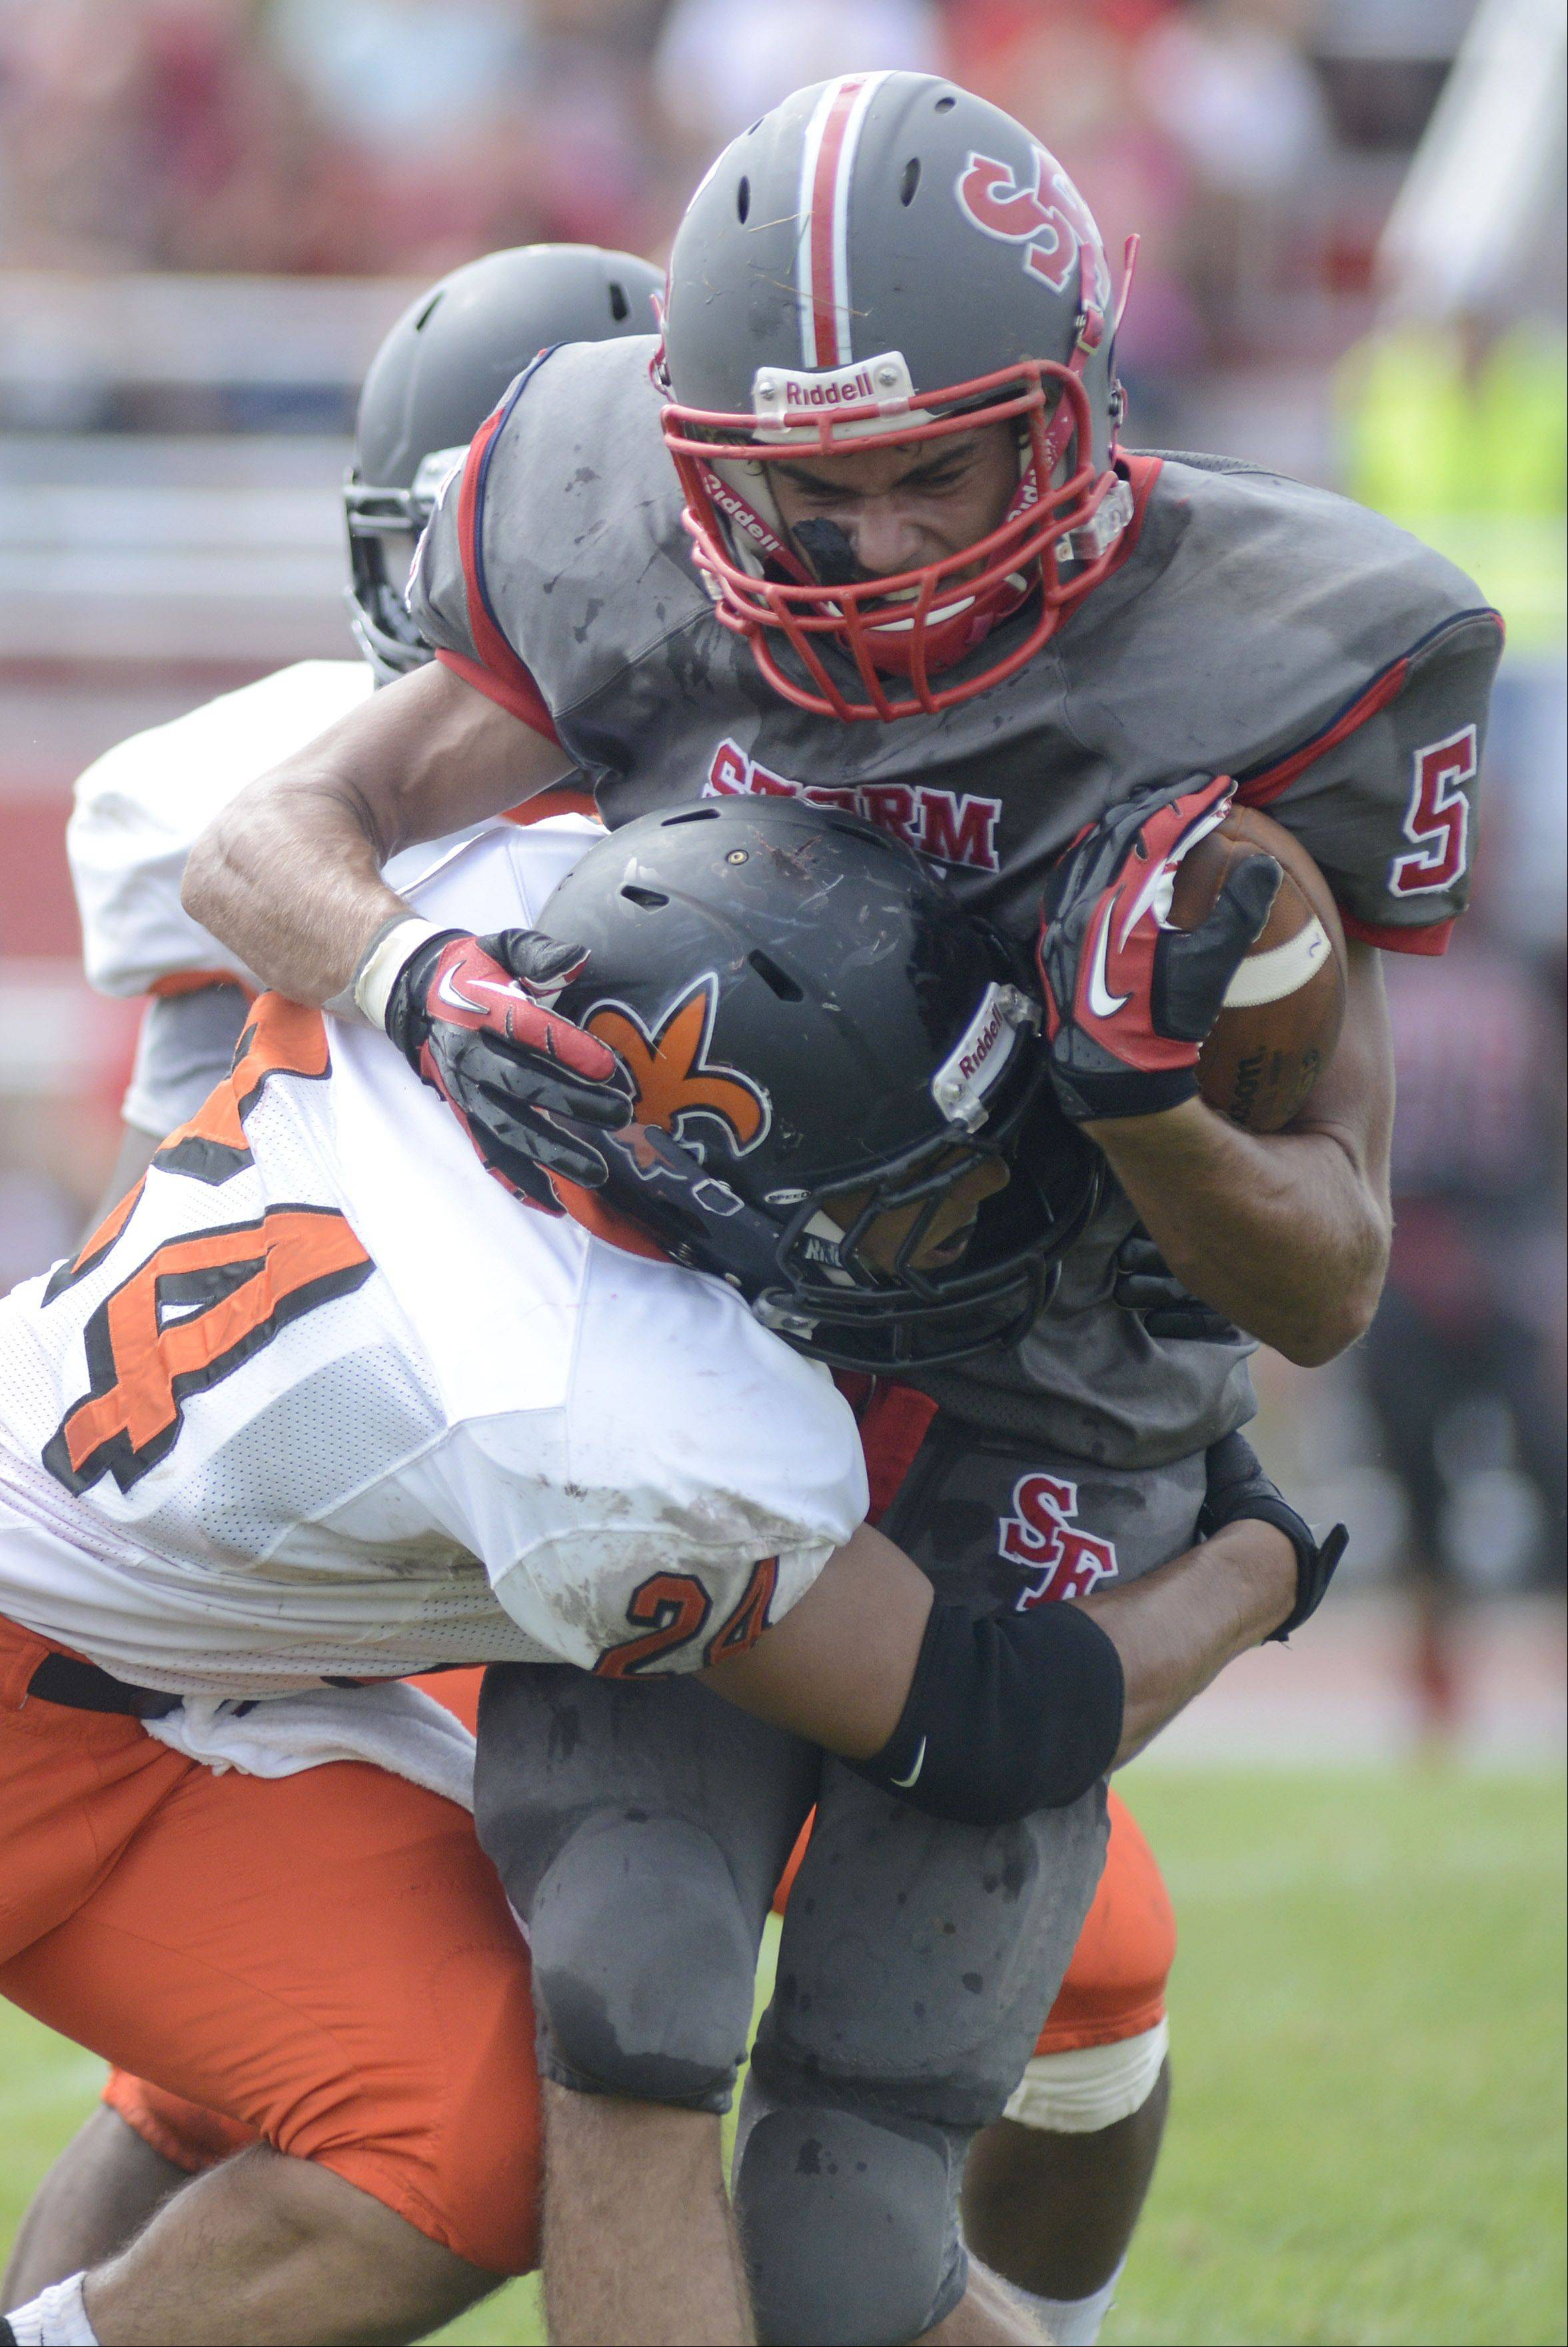 South Elgin's Tyler Christensen is sacked by St. Charles East's Ramon Lopez during Saturday's football game.